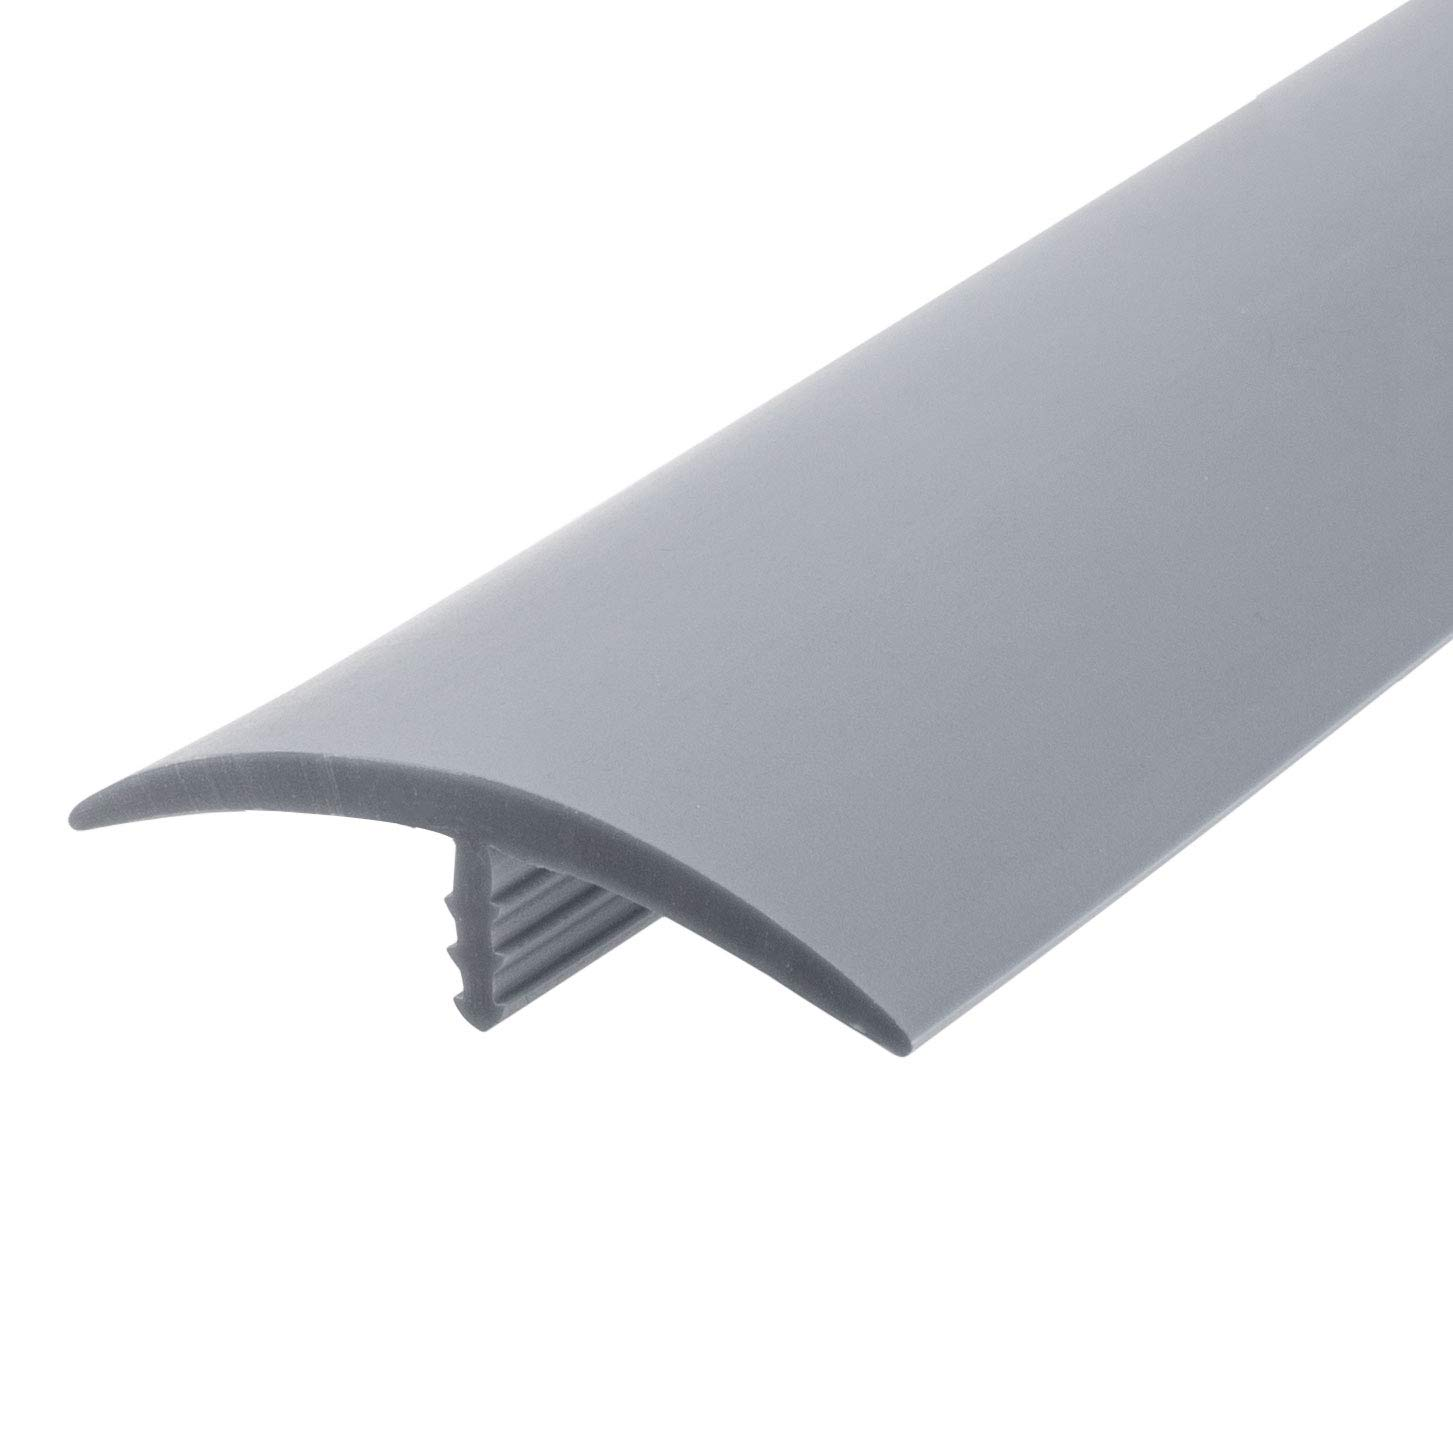 Outwater Plastic T-molding 1-1/2 Inch Silver Flexible Polyethylene Center Barb Tee Moulding 250 Foot Coil